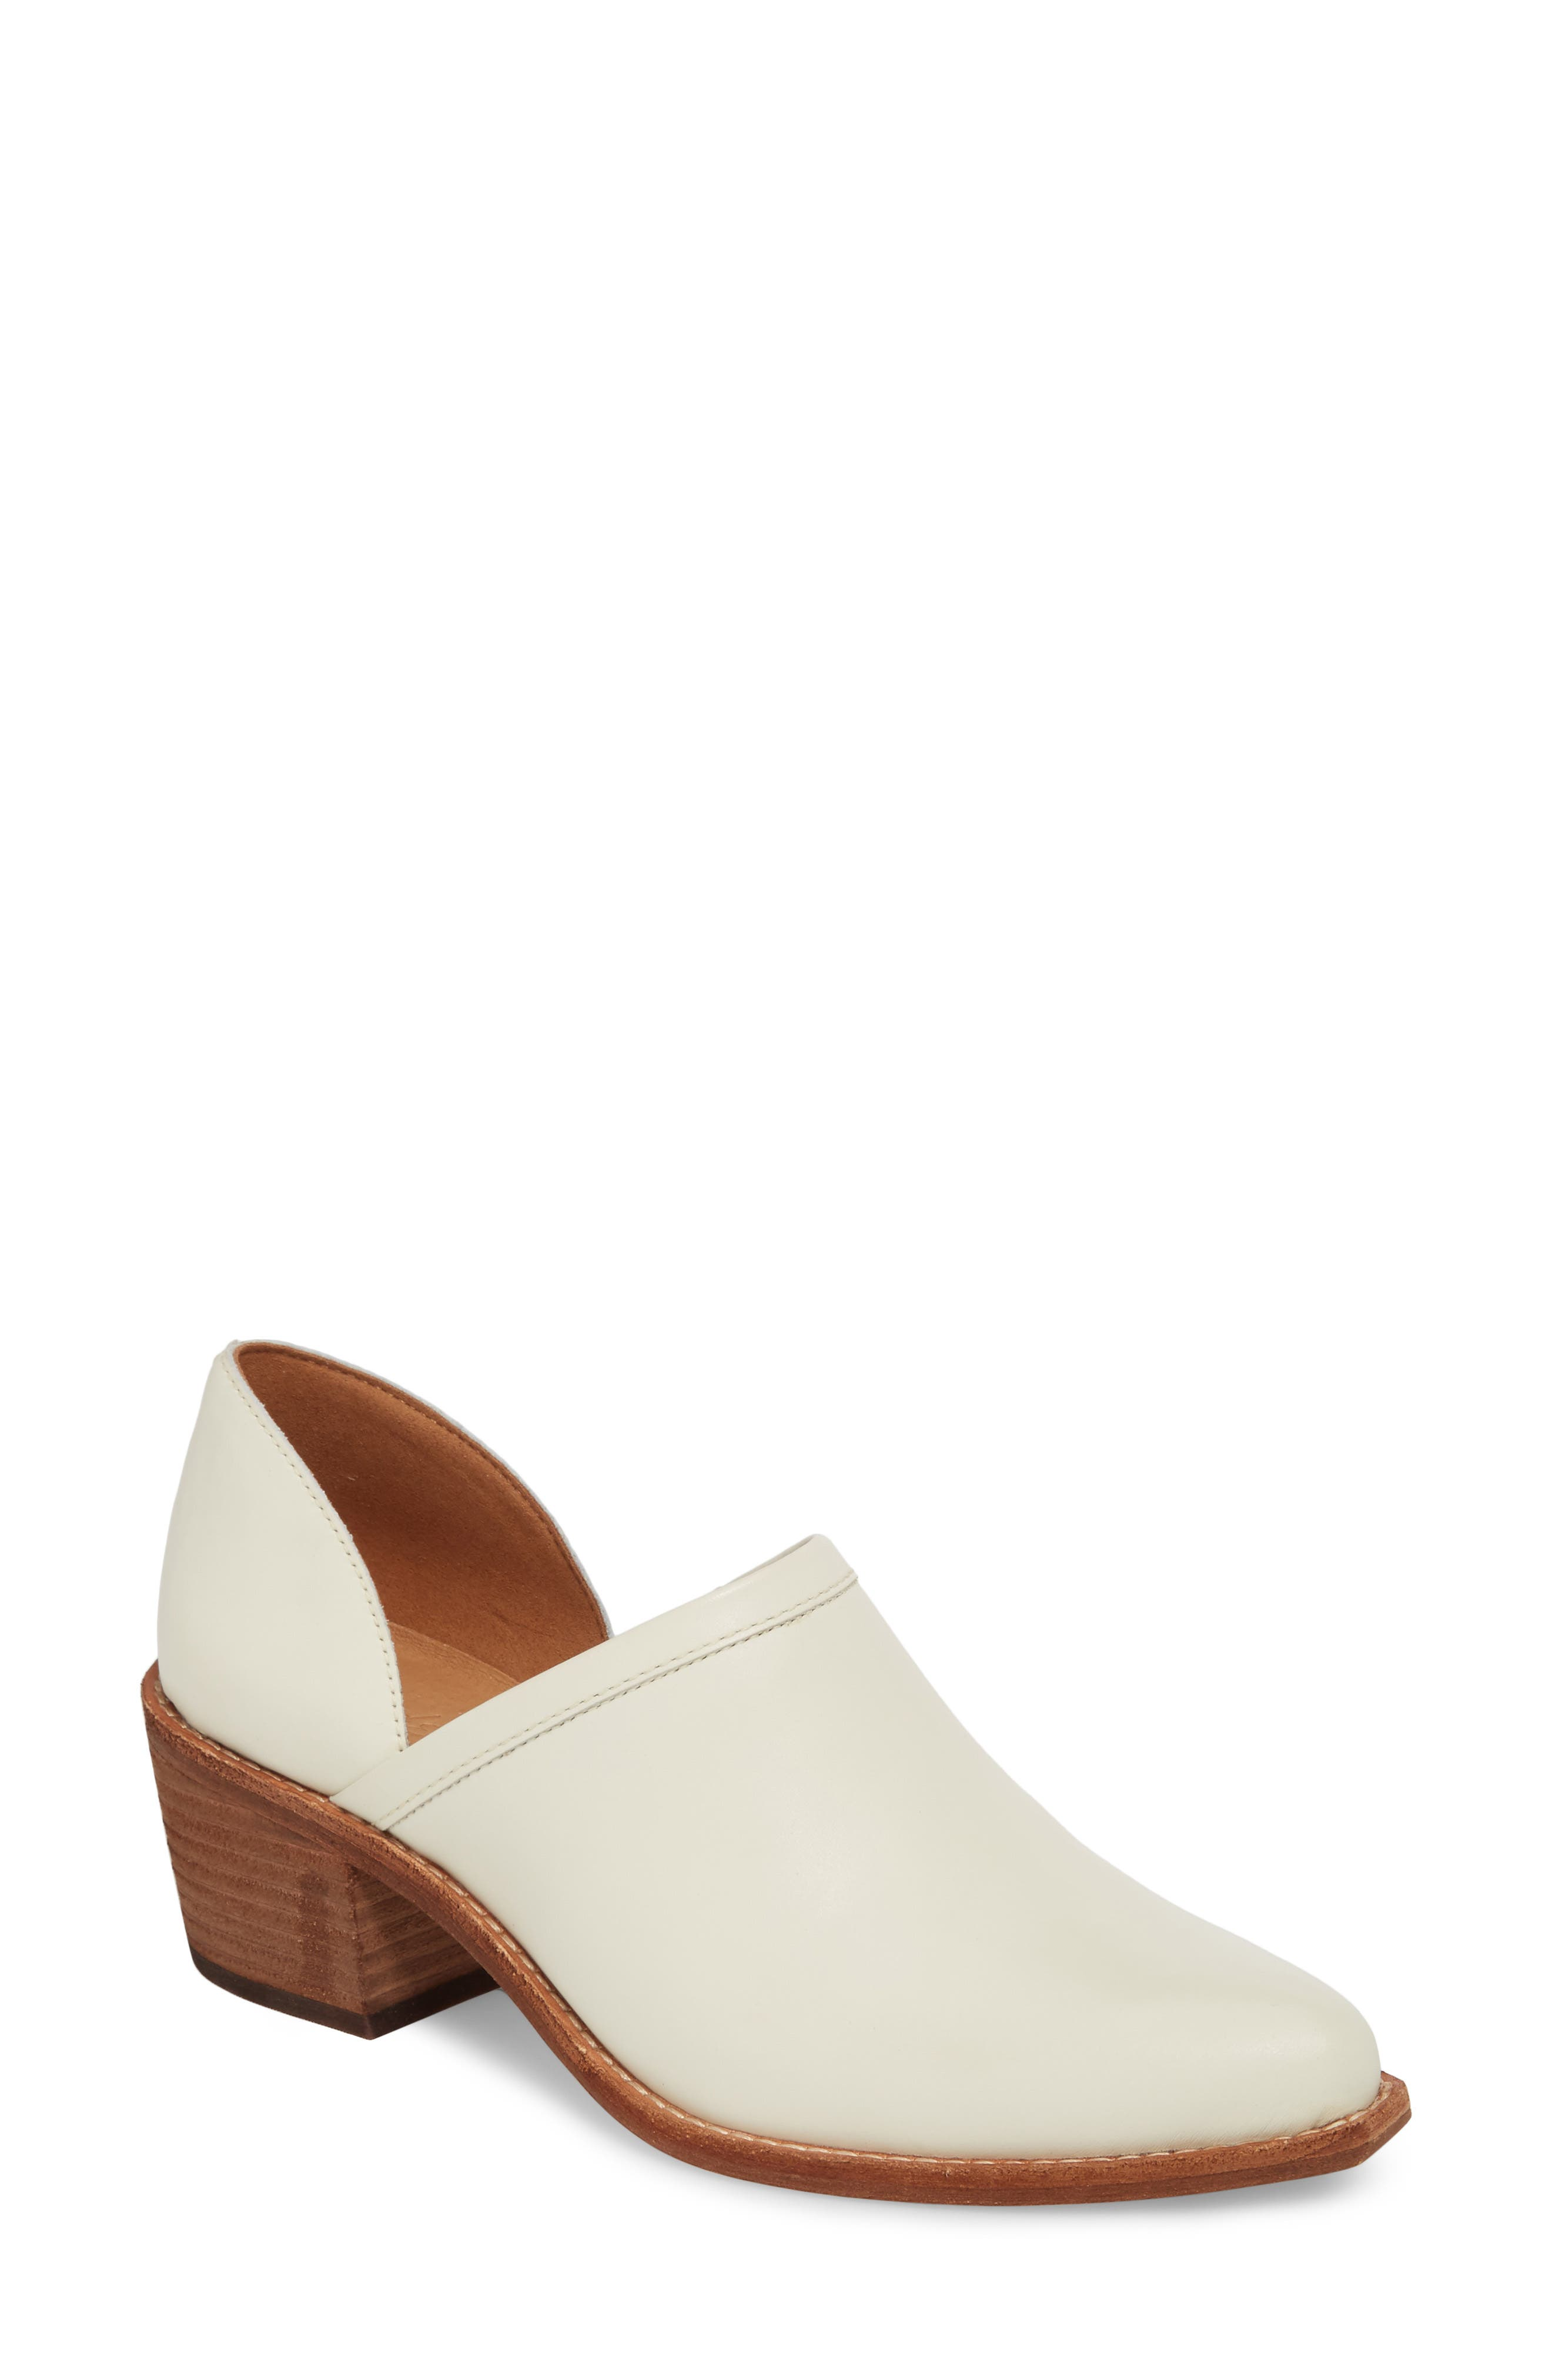 Brady Block Heel Bootie,                         Main,                         color, VINTAGE CANVAS LEATHER